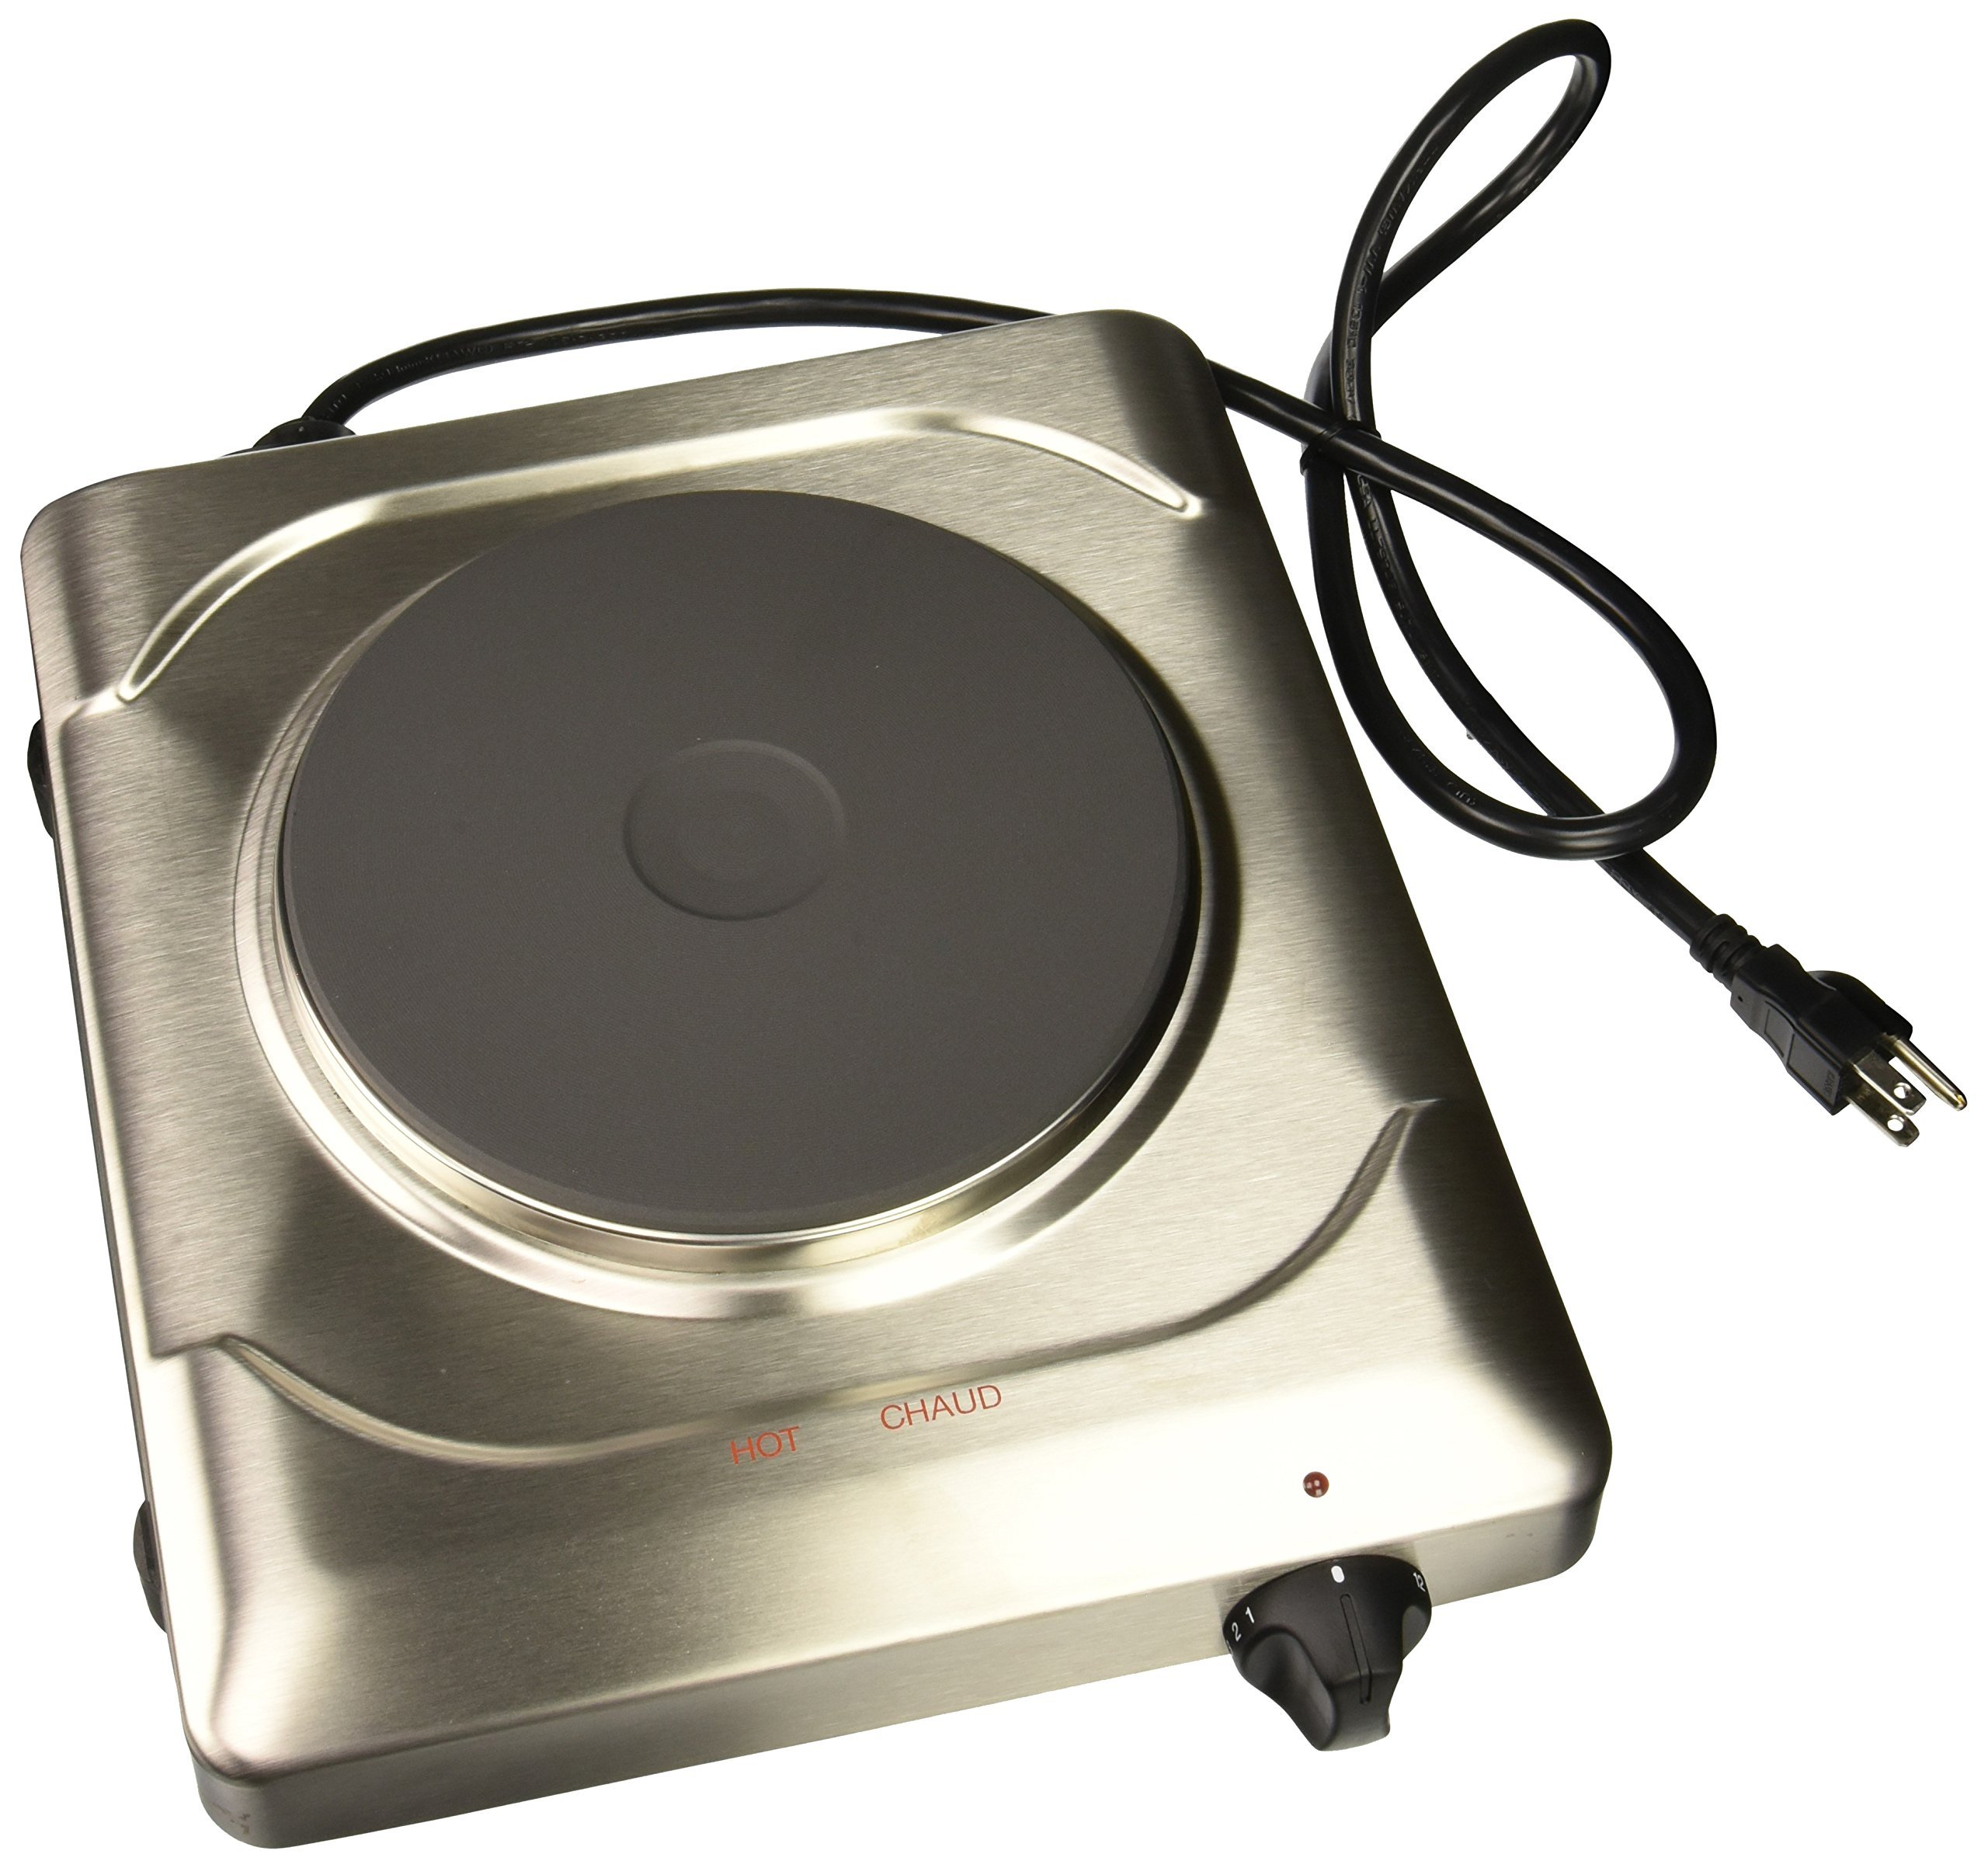 Cadco PCR-1S Professional Cast Iron Range, Stainless